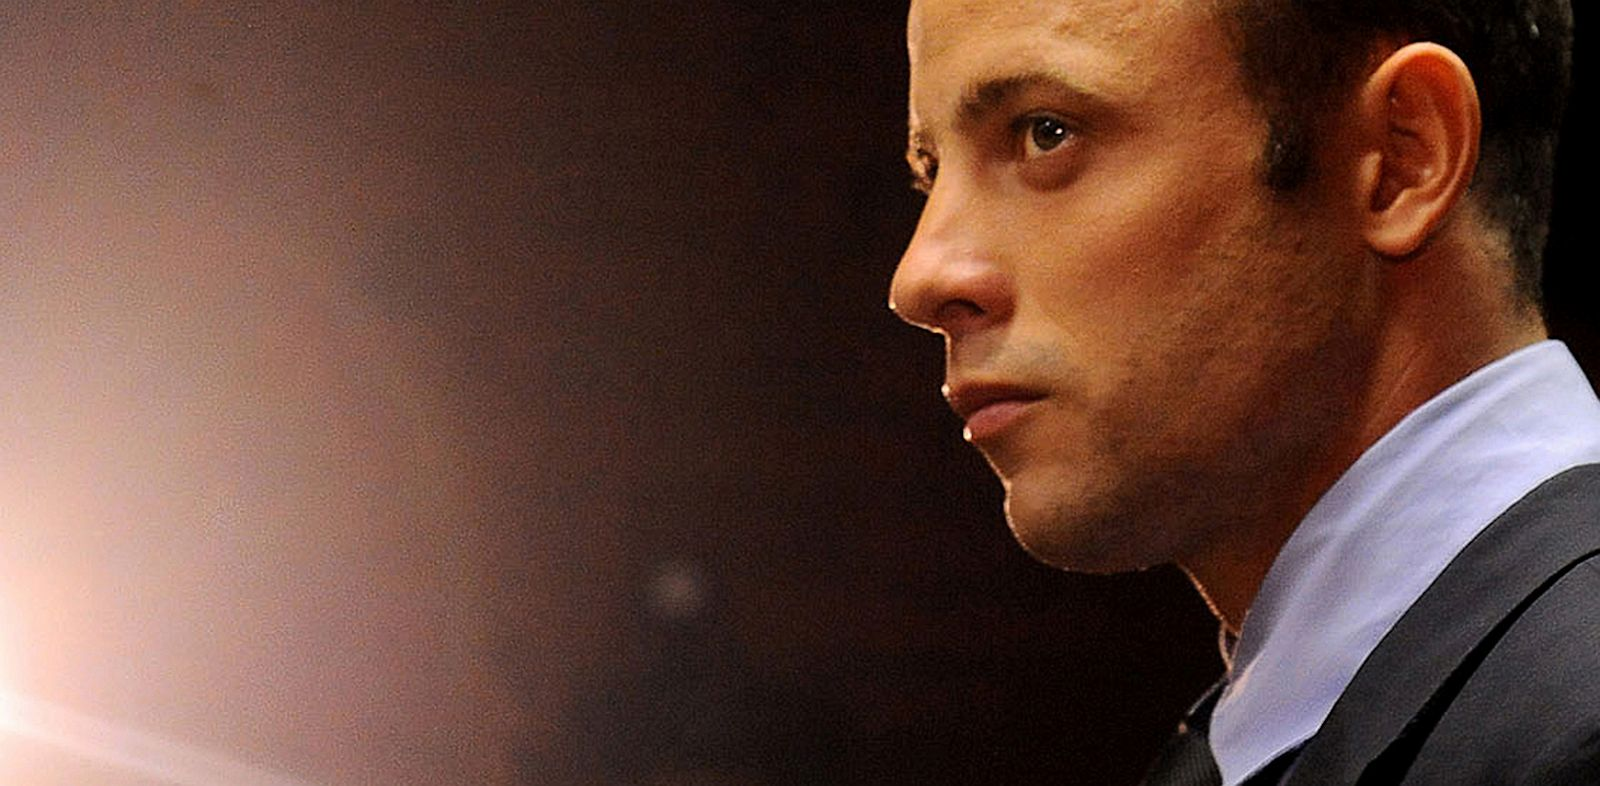 PHOTO: Oscar Pistorius in court